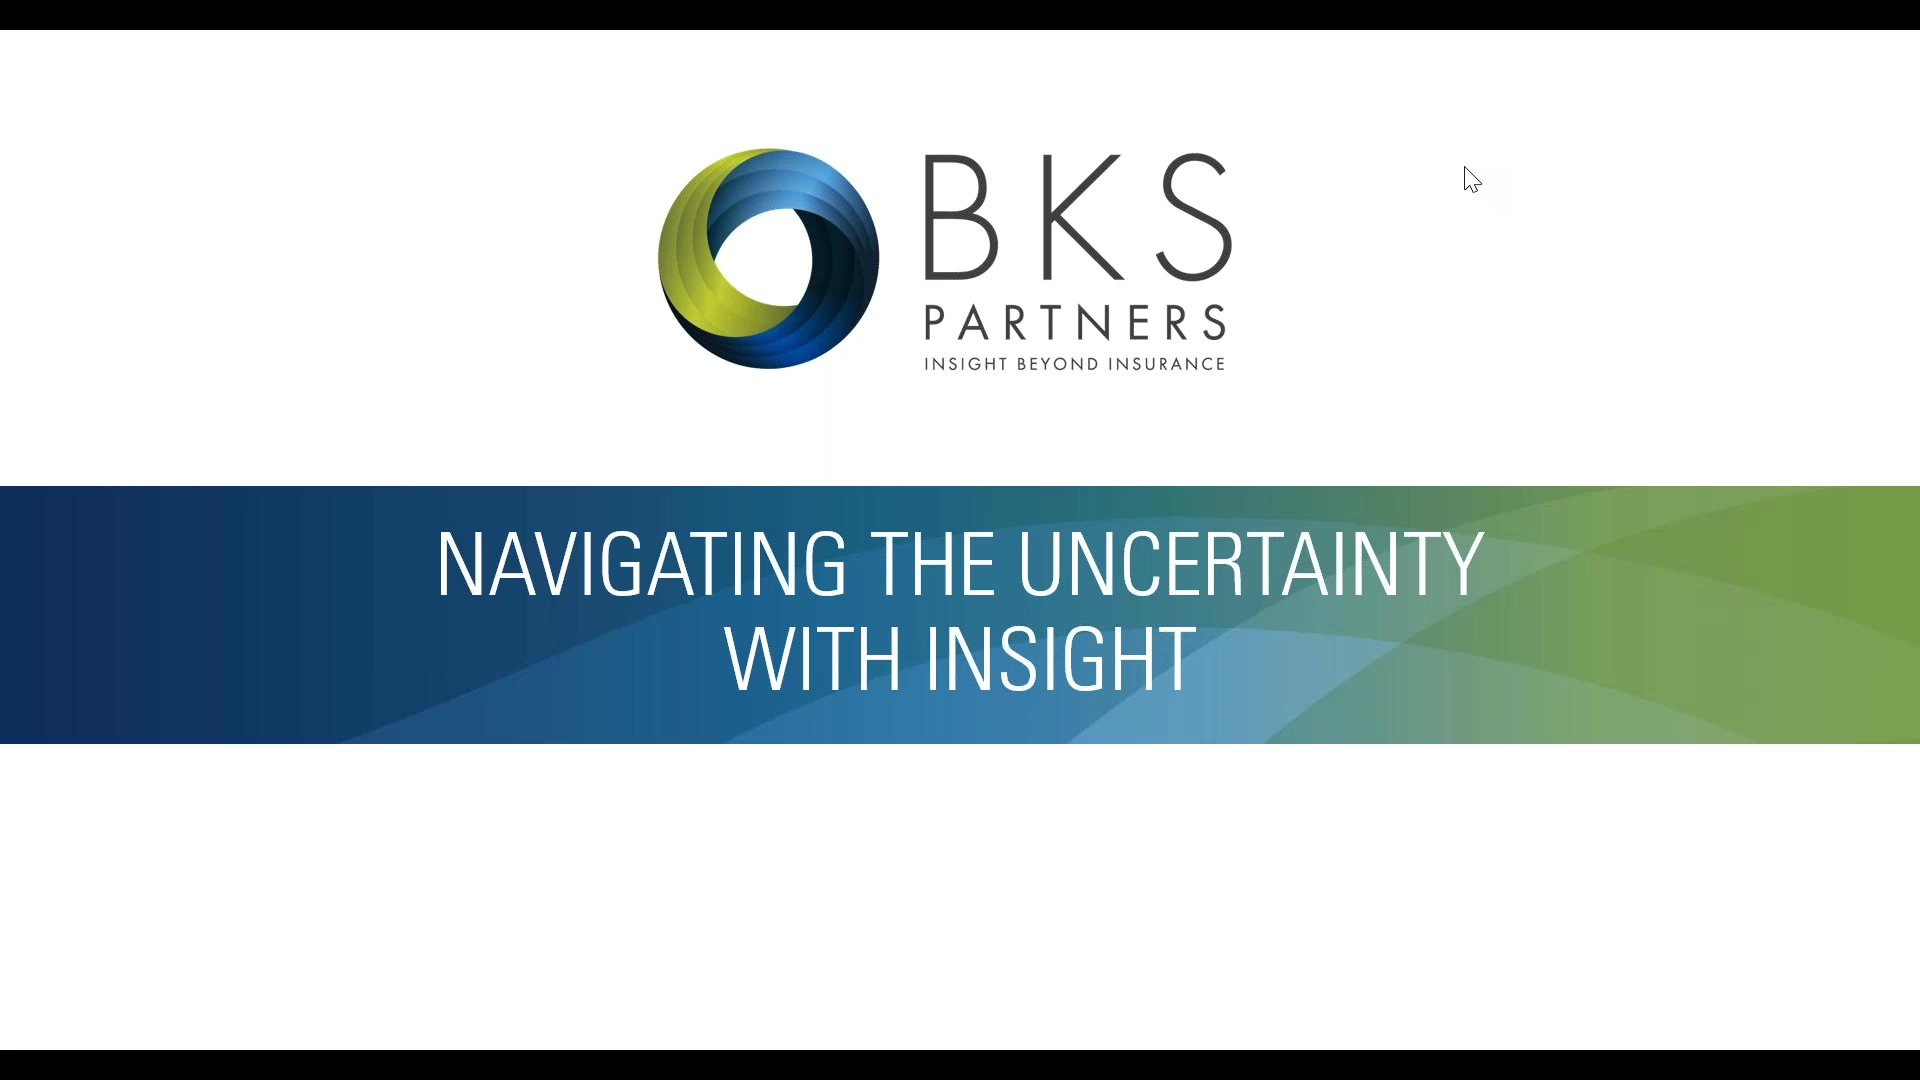 Navigating the Uncertainty with Insight - P&C Market Outlook